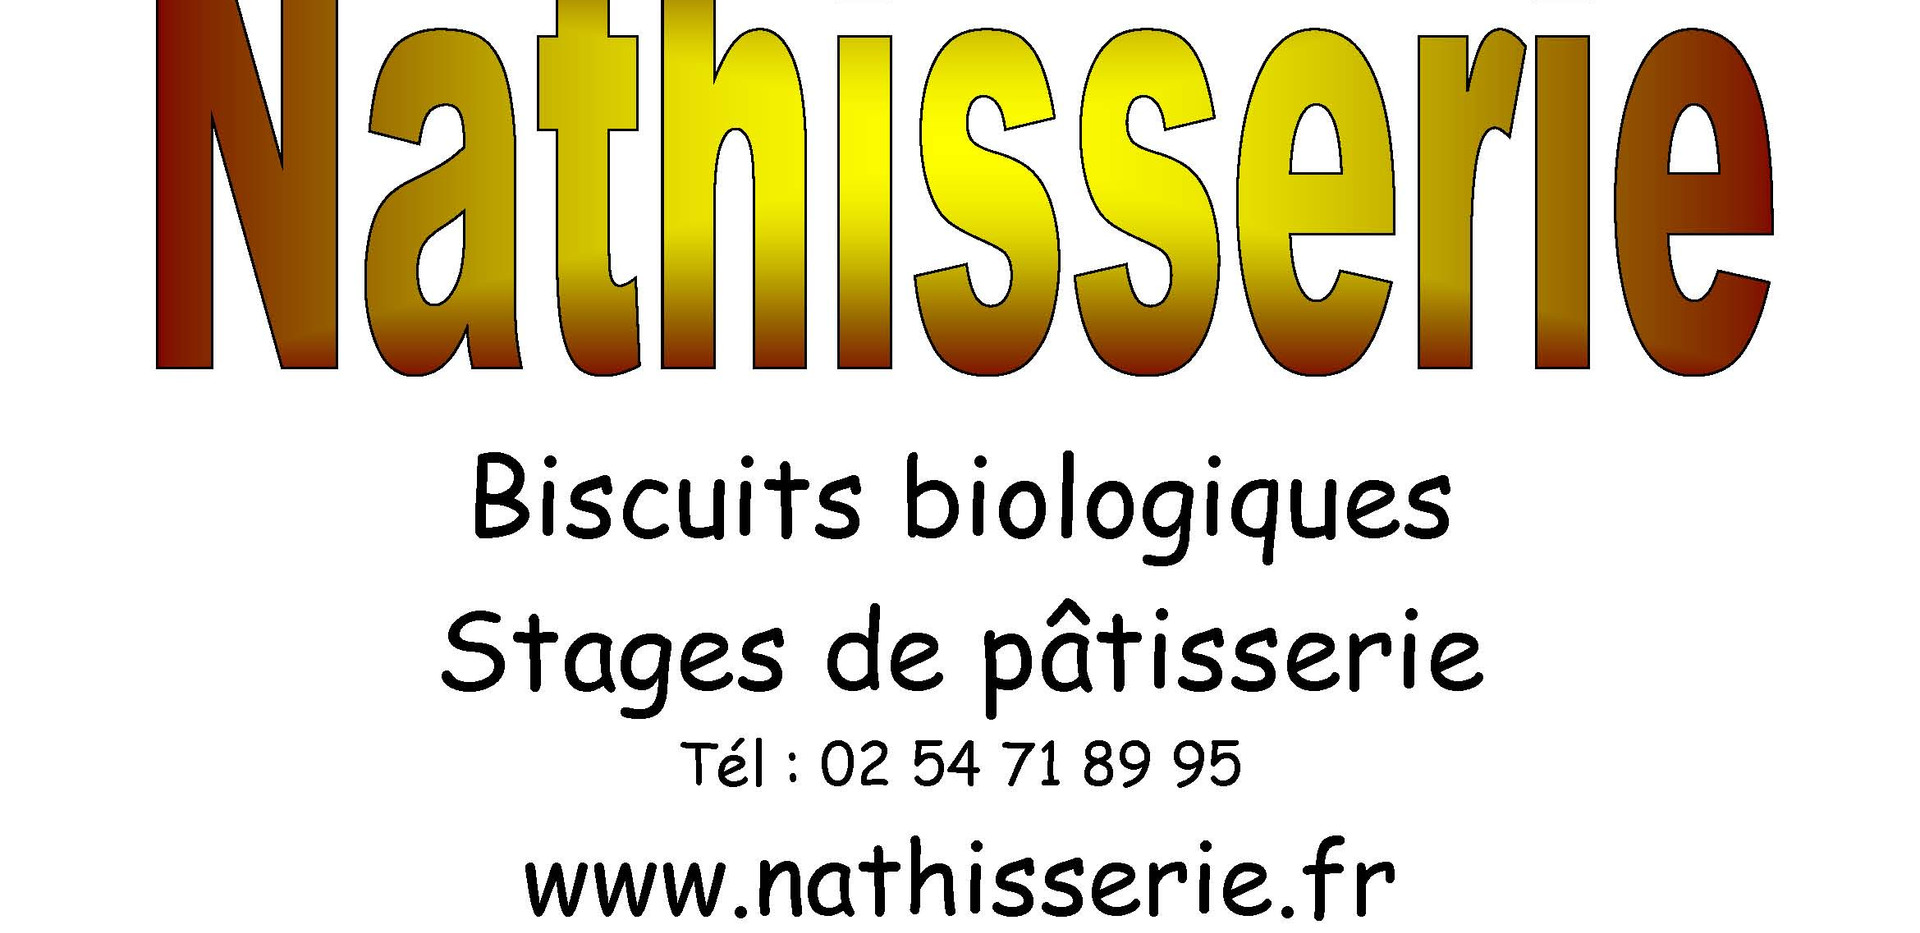 Nathisserie Biscuits biologiques